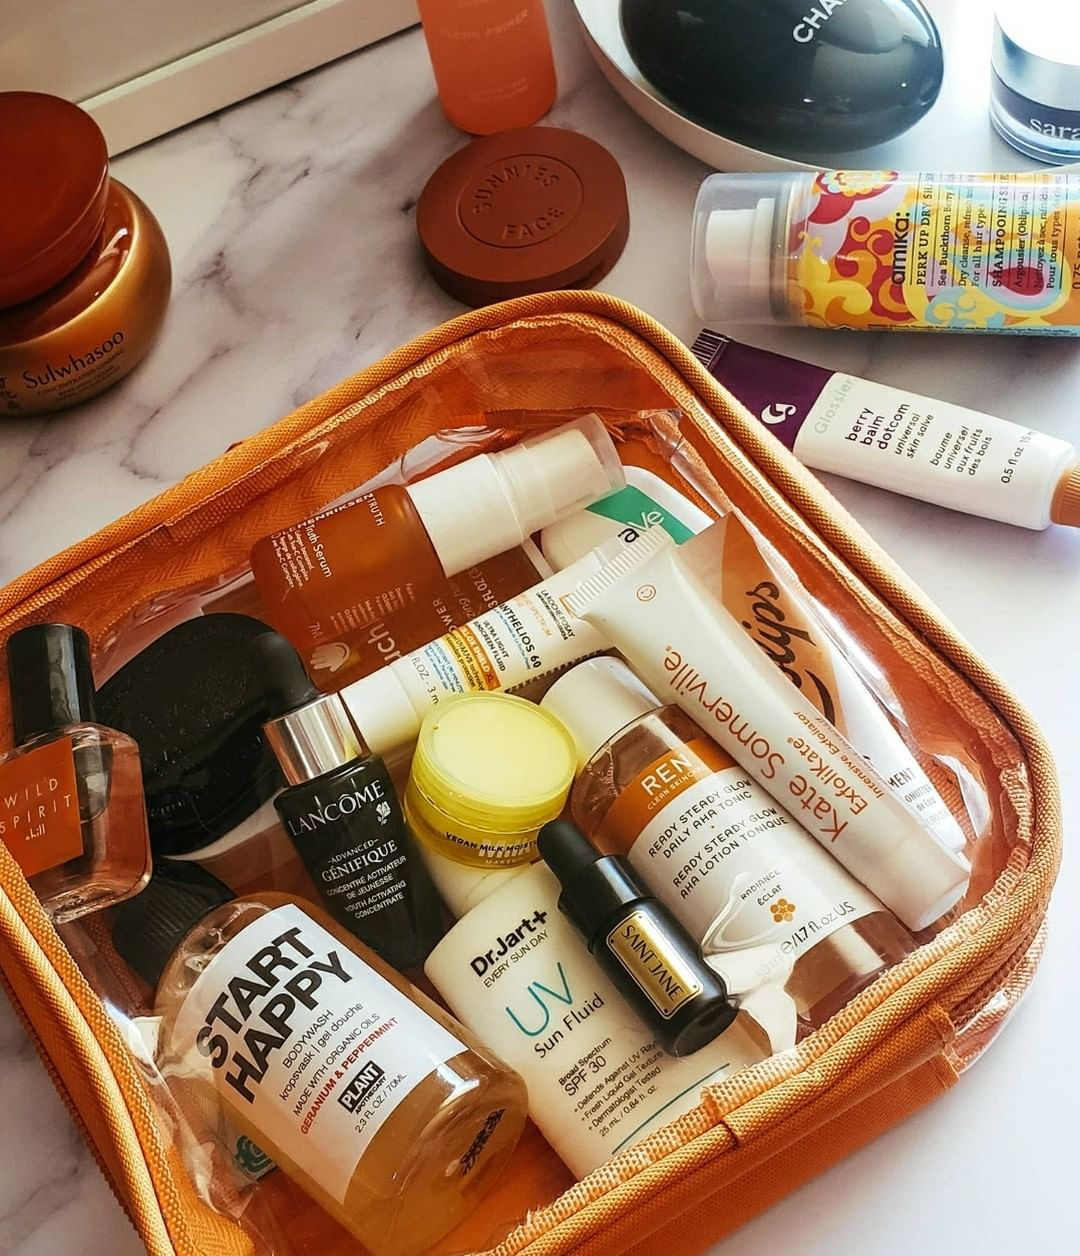 toiletries in an orange extra small cube